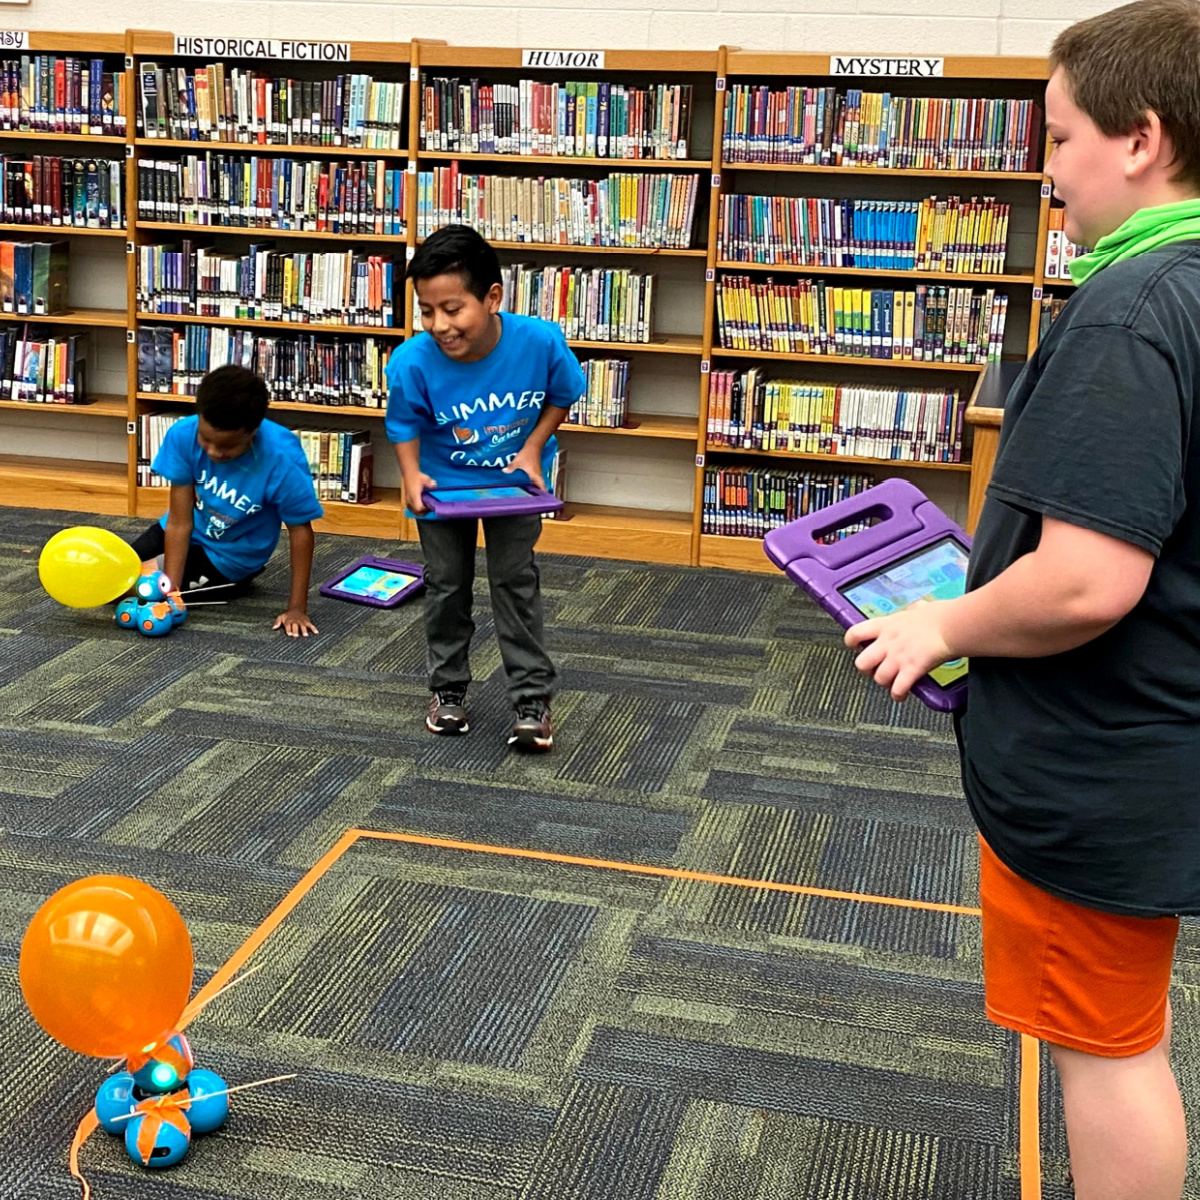 Cayleb Edwards, Brayden Smith and Michael Saunders try to pop each other's balloons with their robotic cars